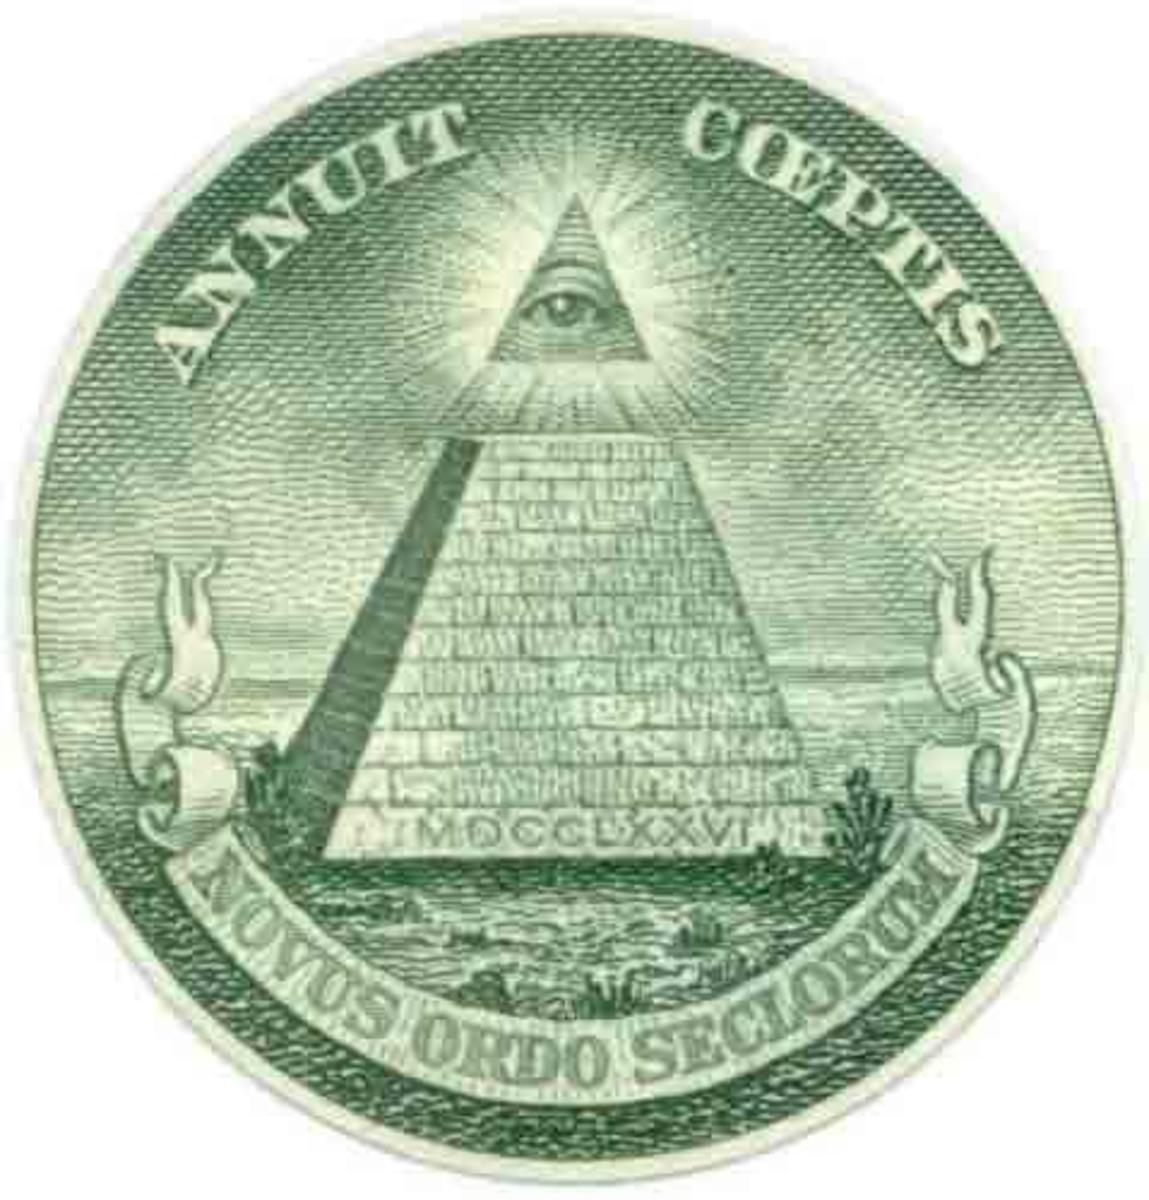 The Illuminati was established at the birth of the United States of America in 1776 when independence was declared from England.